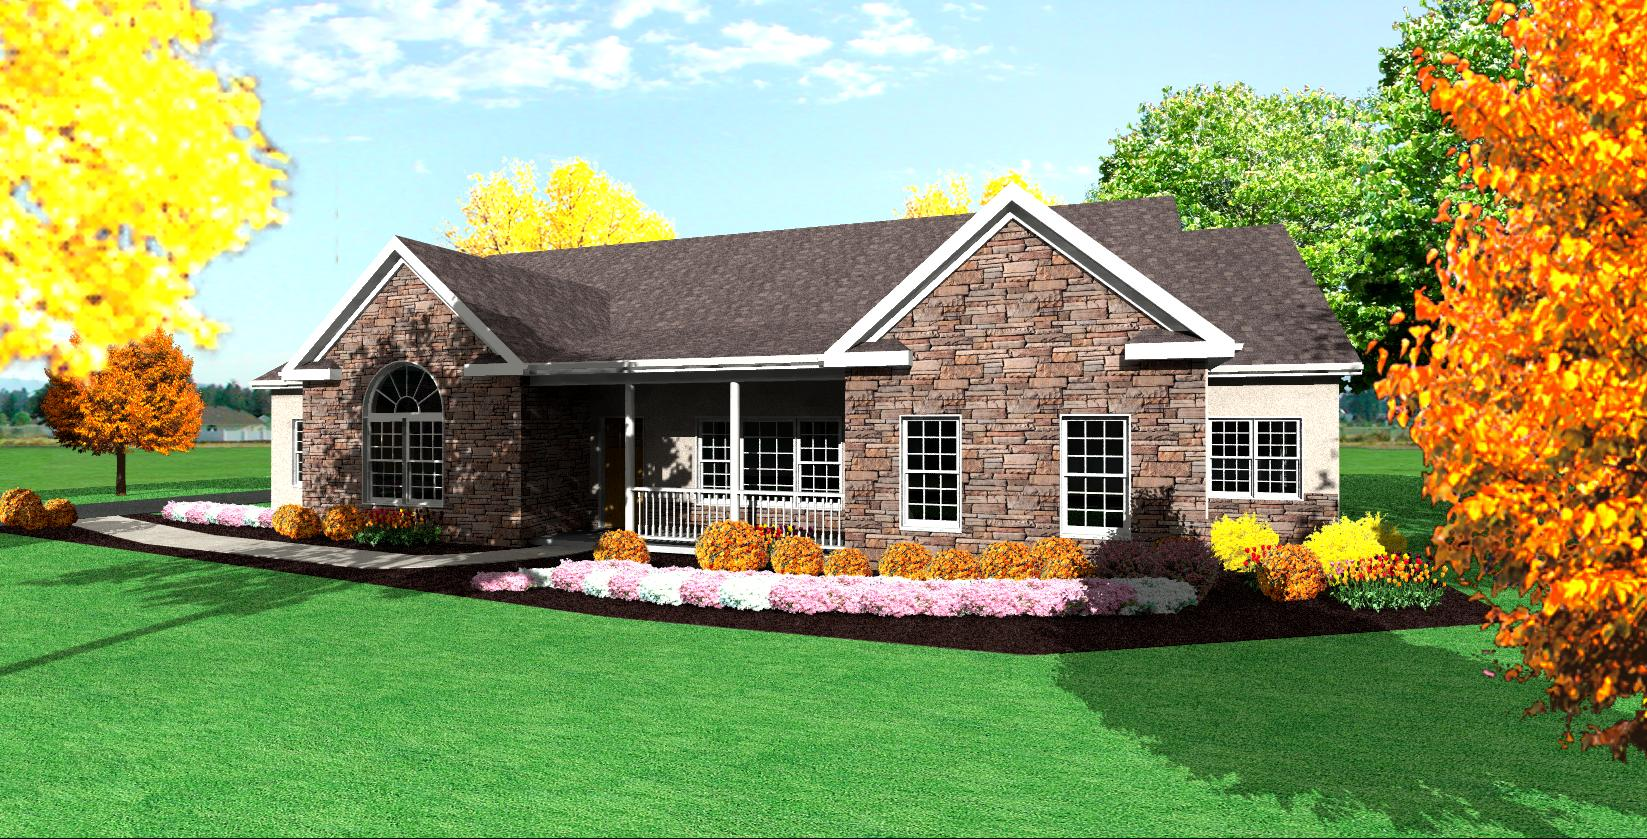 Single story ranch house plans unique house plans Single story ranch homes